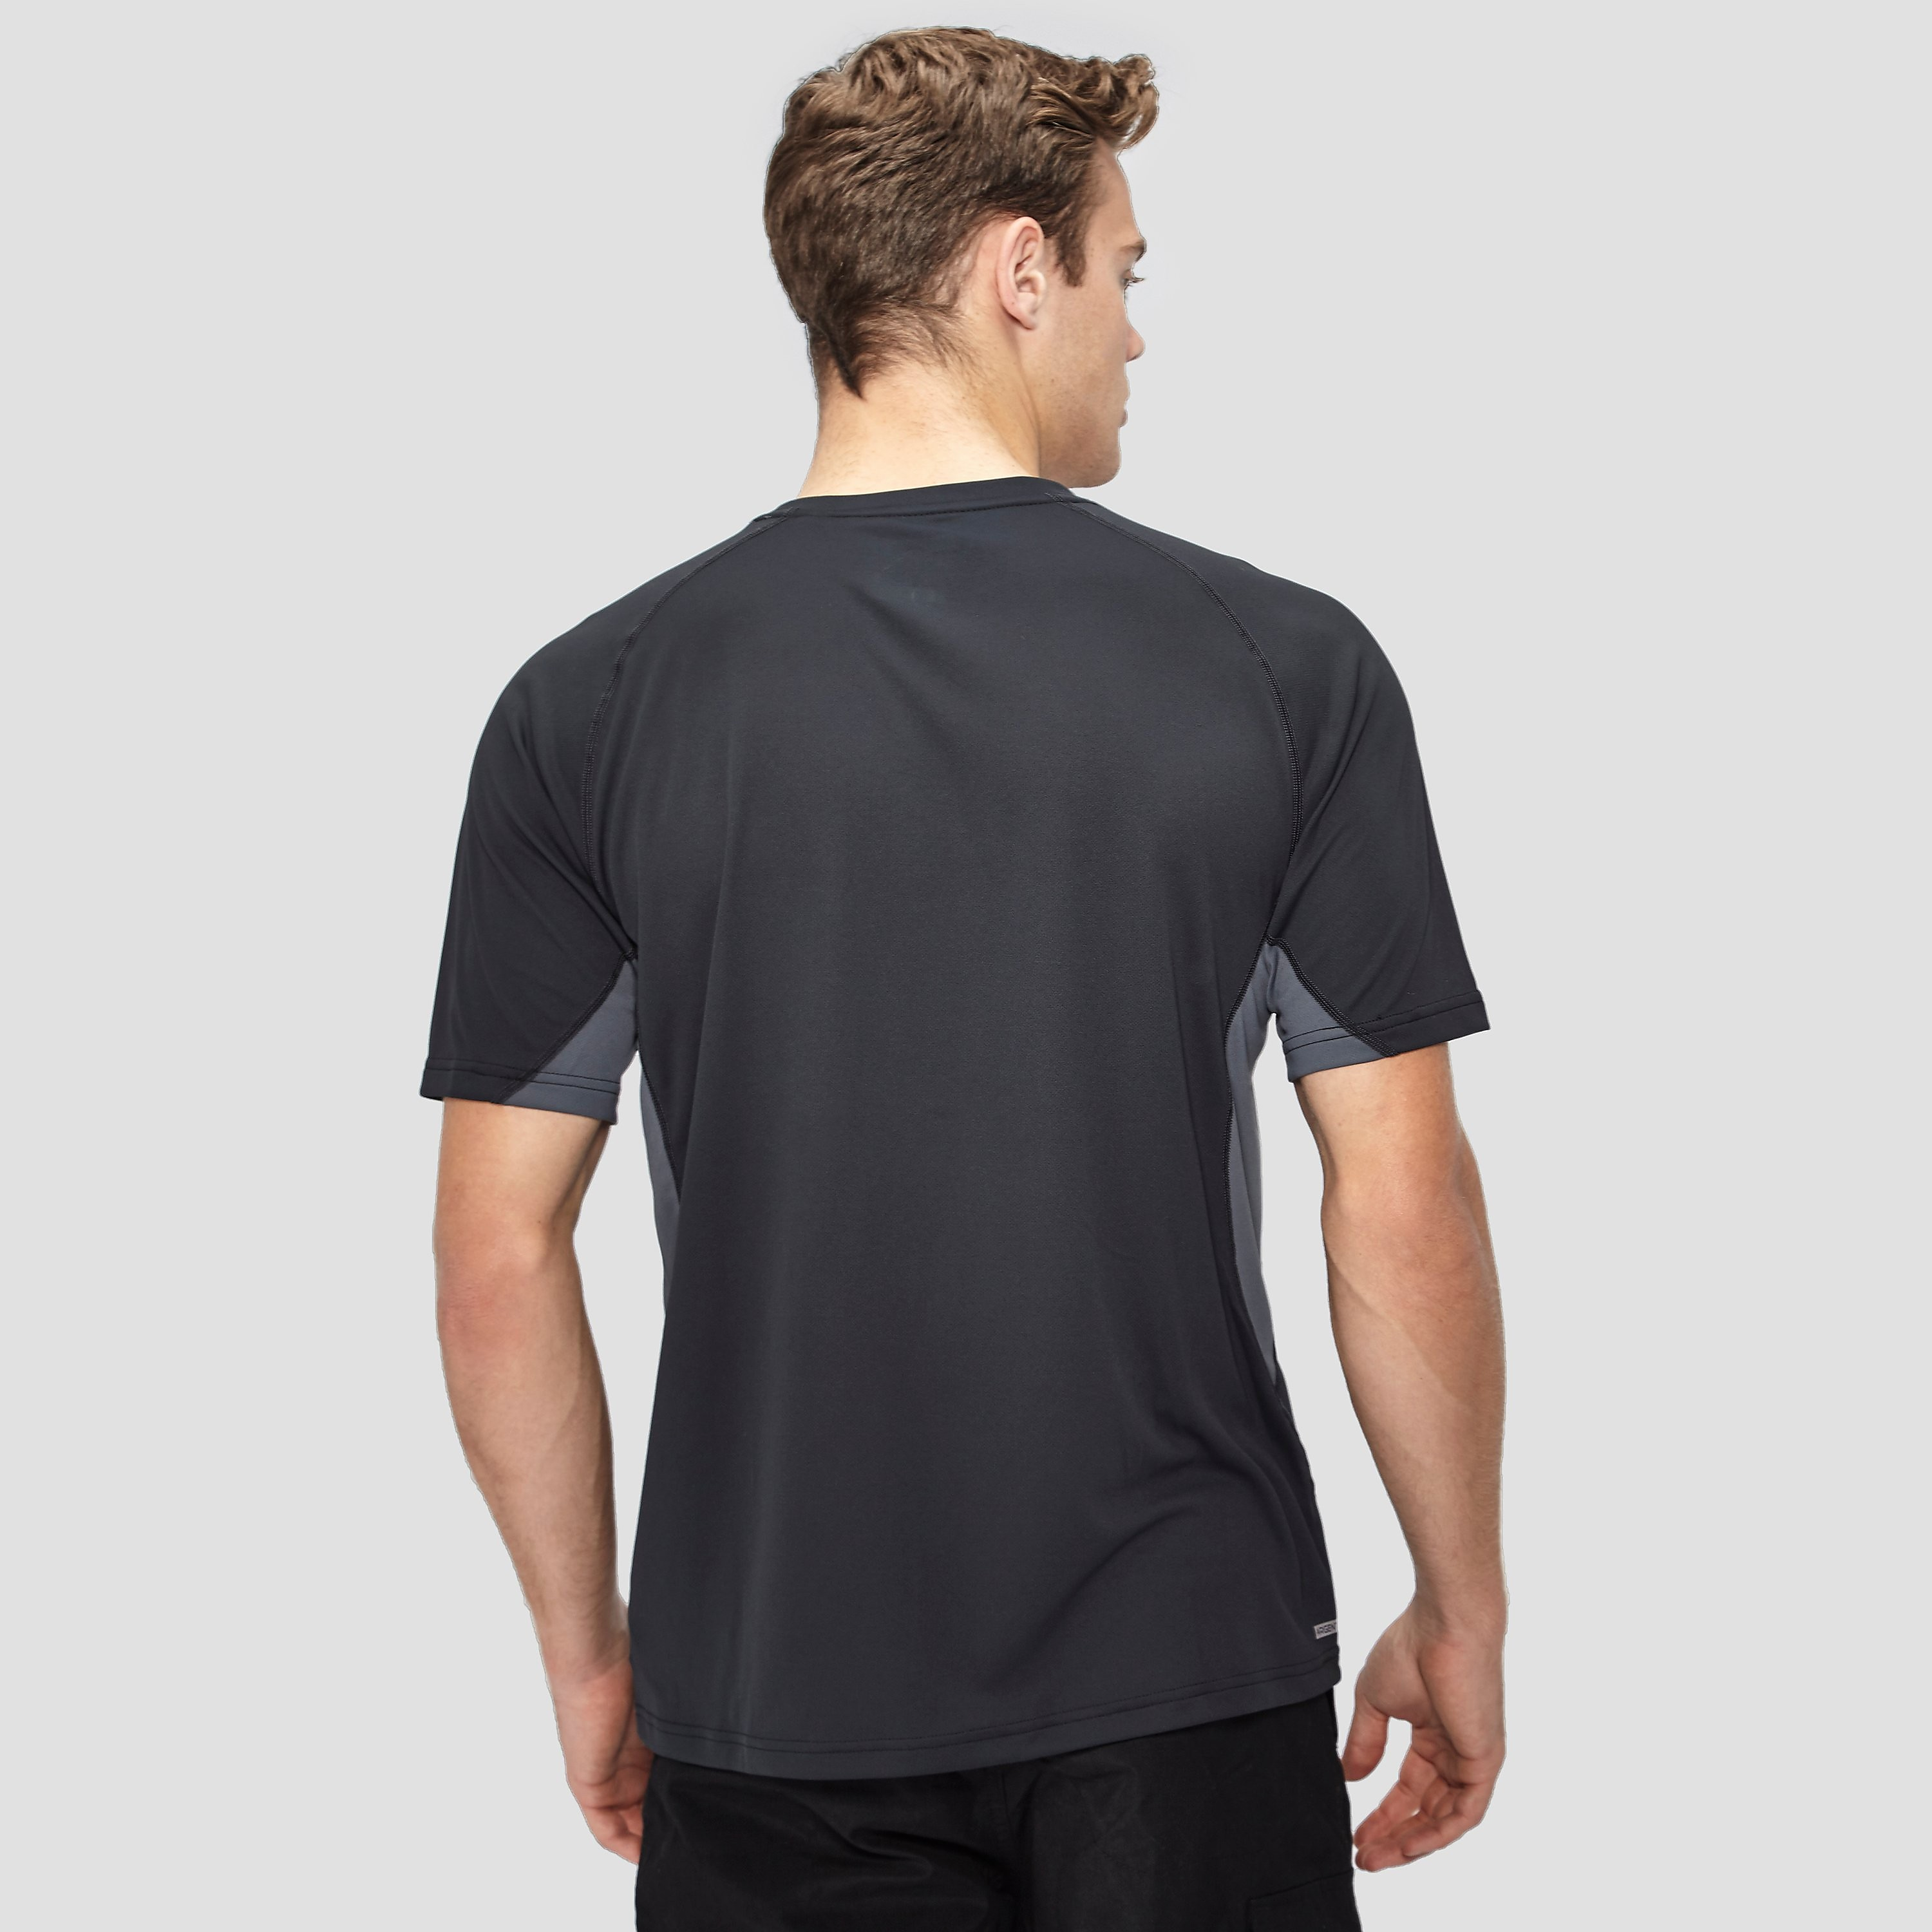 Berghaus Short Sleeve Crew Neck Men's Technical T-Shirt